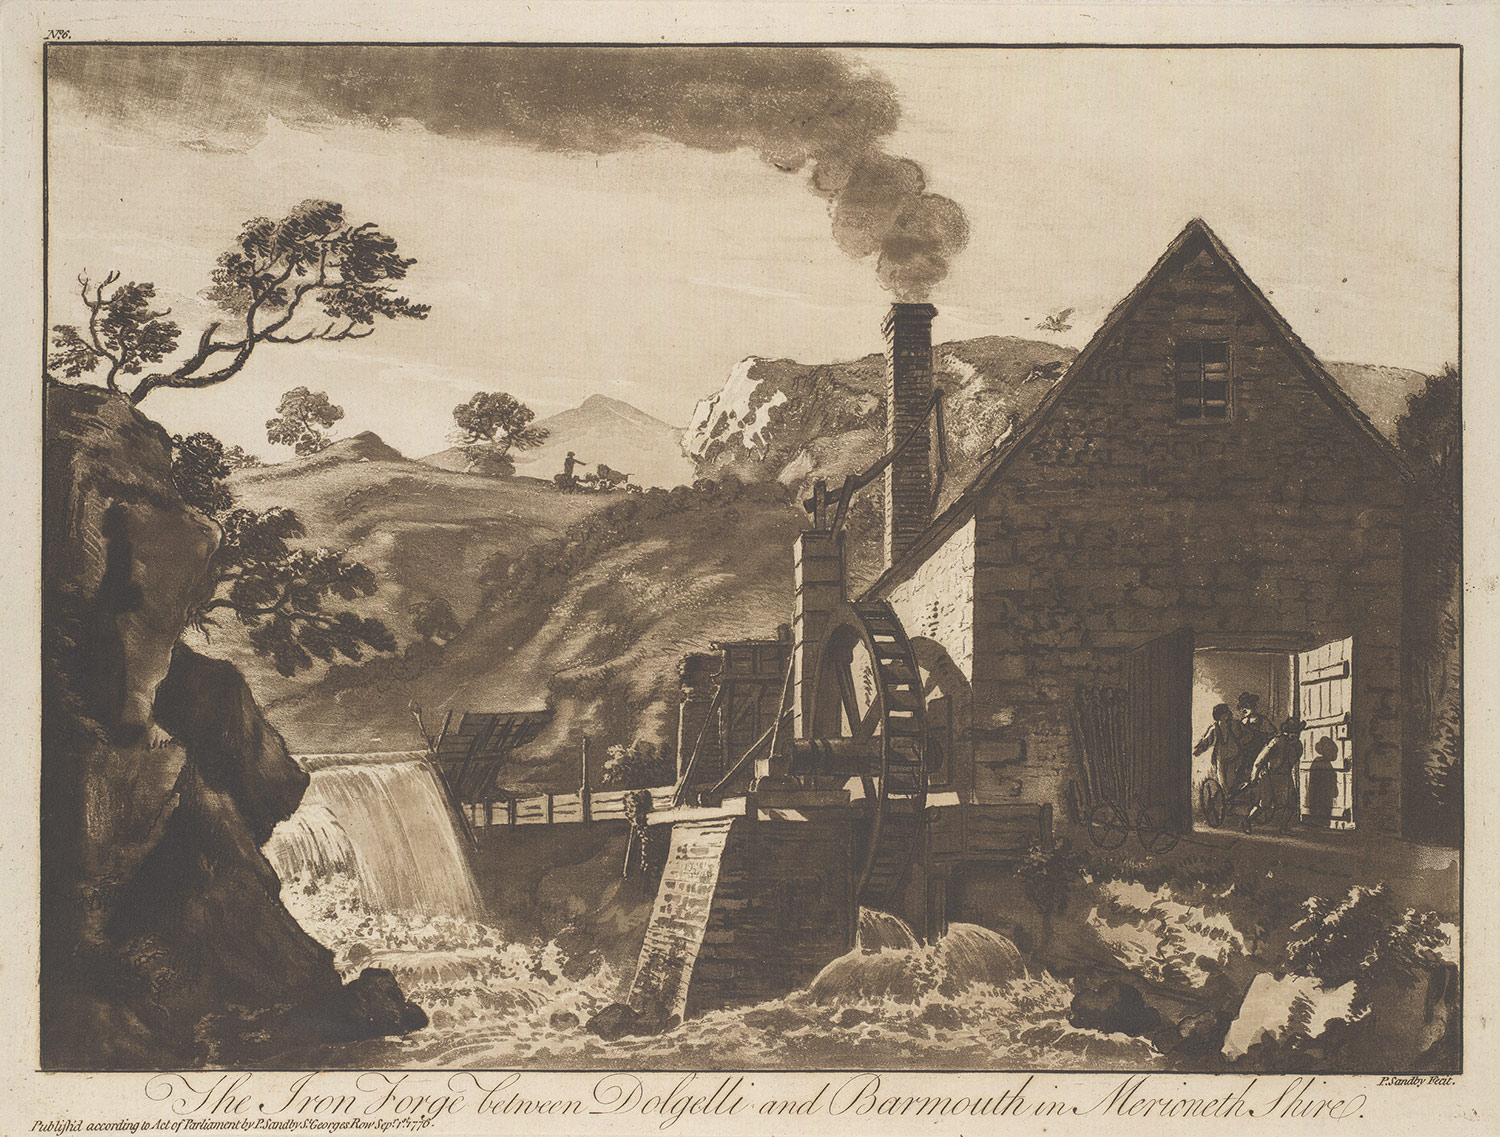 aquatint, The Iron Forge between Dolgelli and Barmouth in Merioneth Shire: Plate 6 of XII Views in North Wales